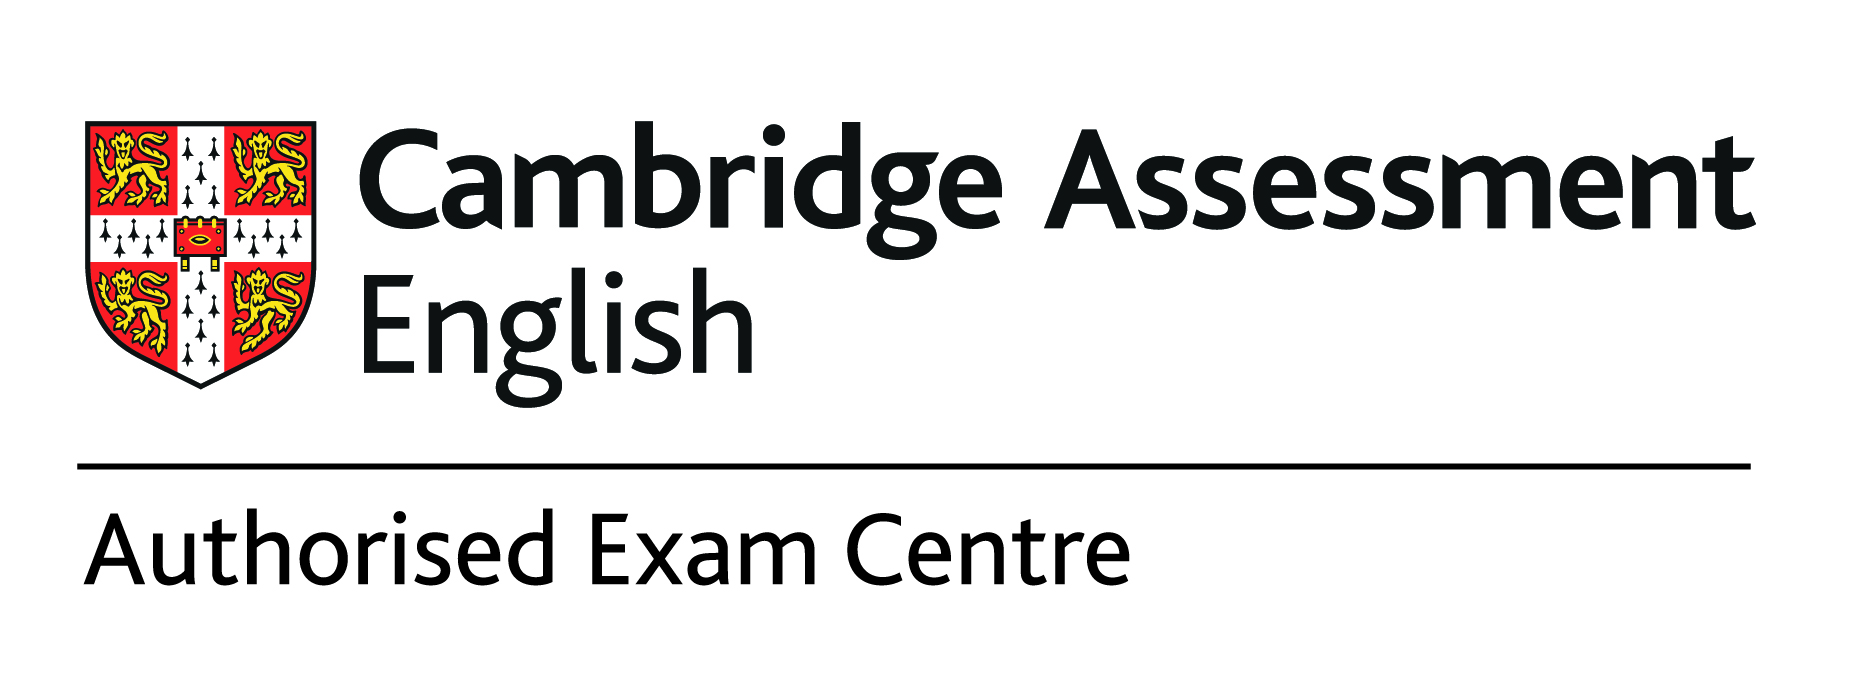 Authorised exam centre logo CMYK.jpg